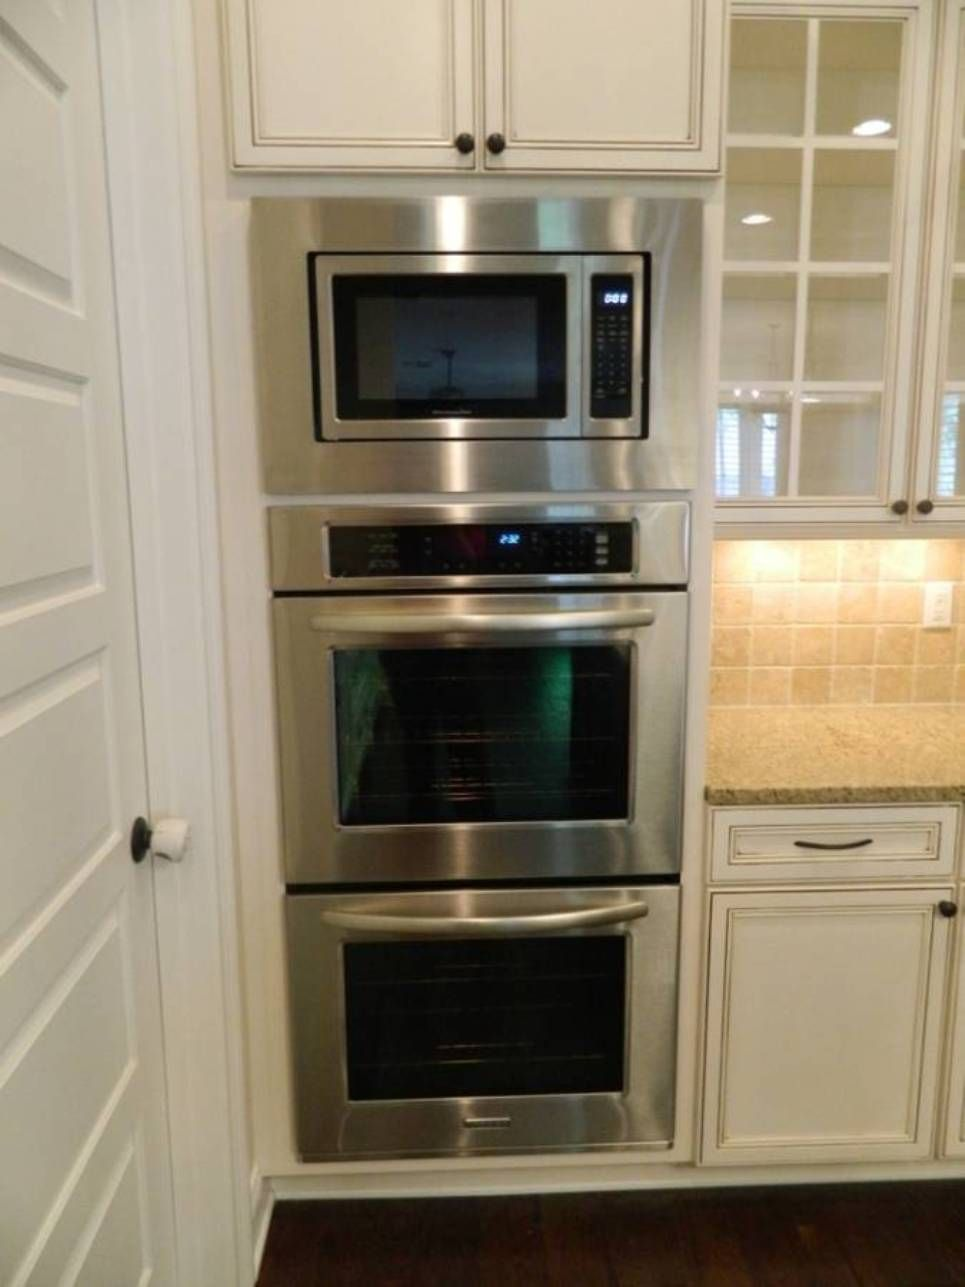 Separate Microwave And Double Oven Bimpe S House